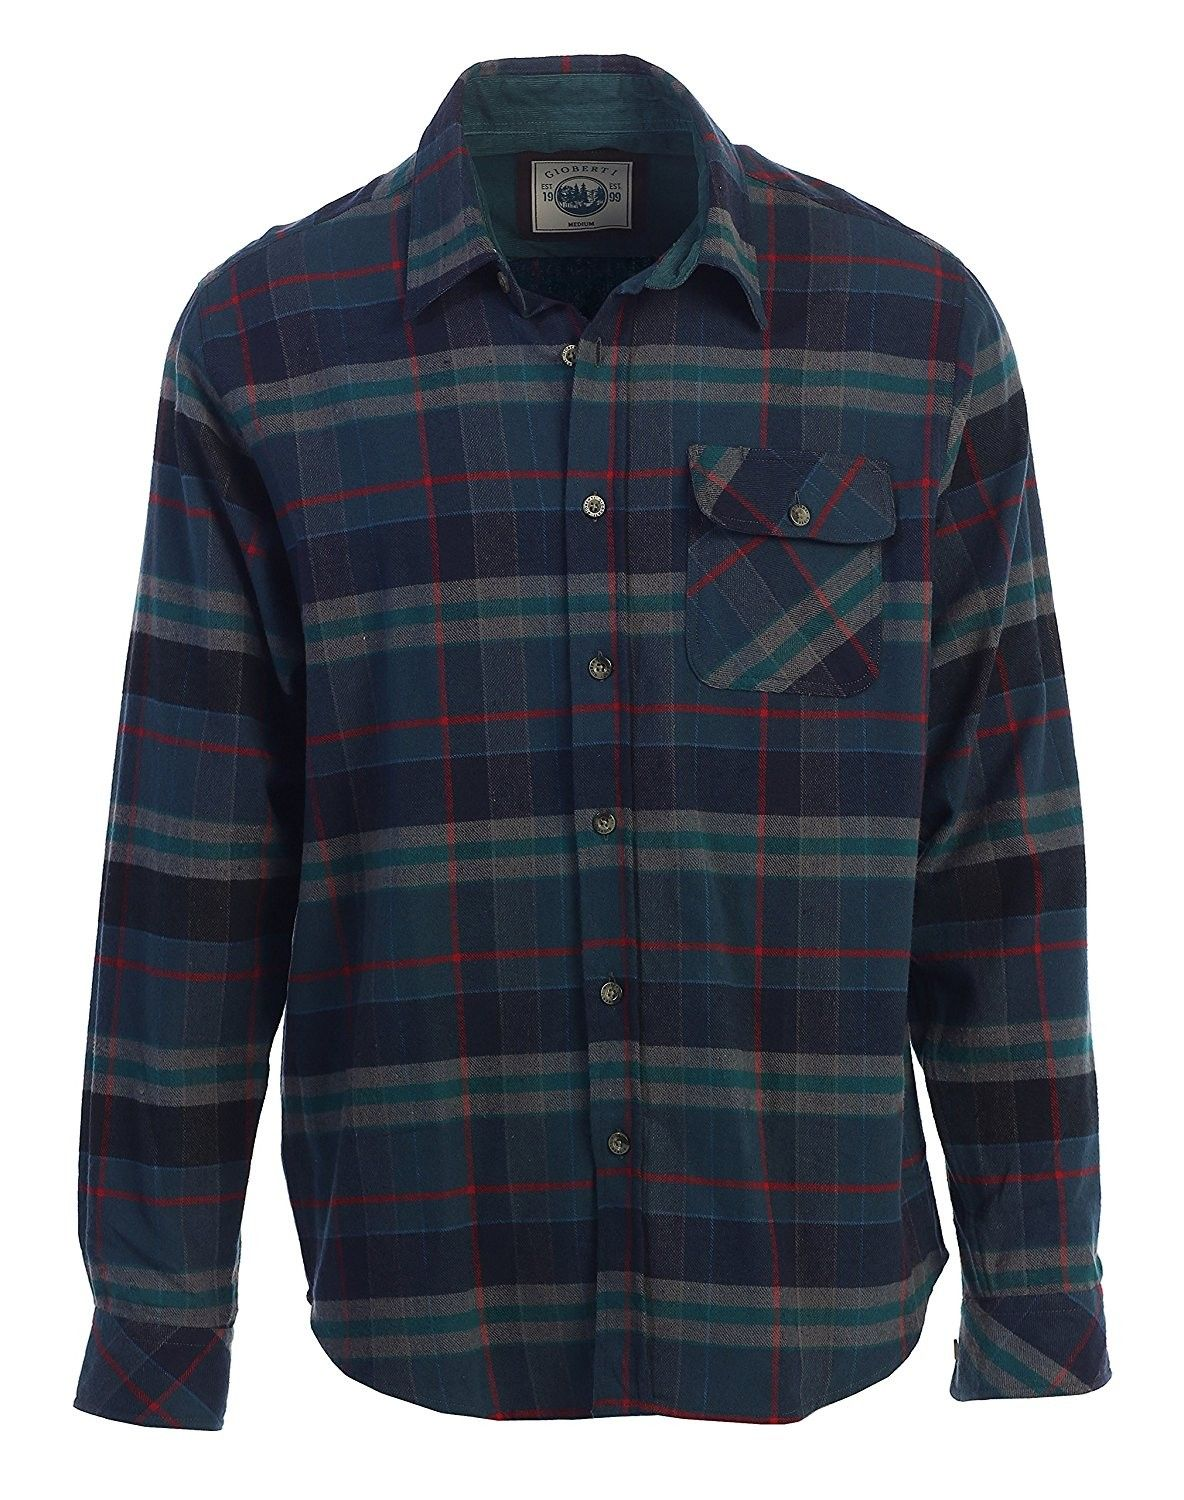 d0063bd2e67f Men's Clothing, Shirts, Casual Button-Down Shirts, Men's Long Sleeve  Flannel Shirt With Corduroy Contrast - 54 - Dark Green / Red Highlight -  CA187C3X4KY ...